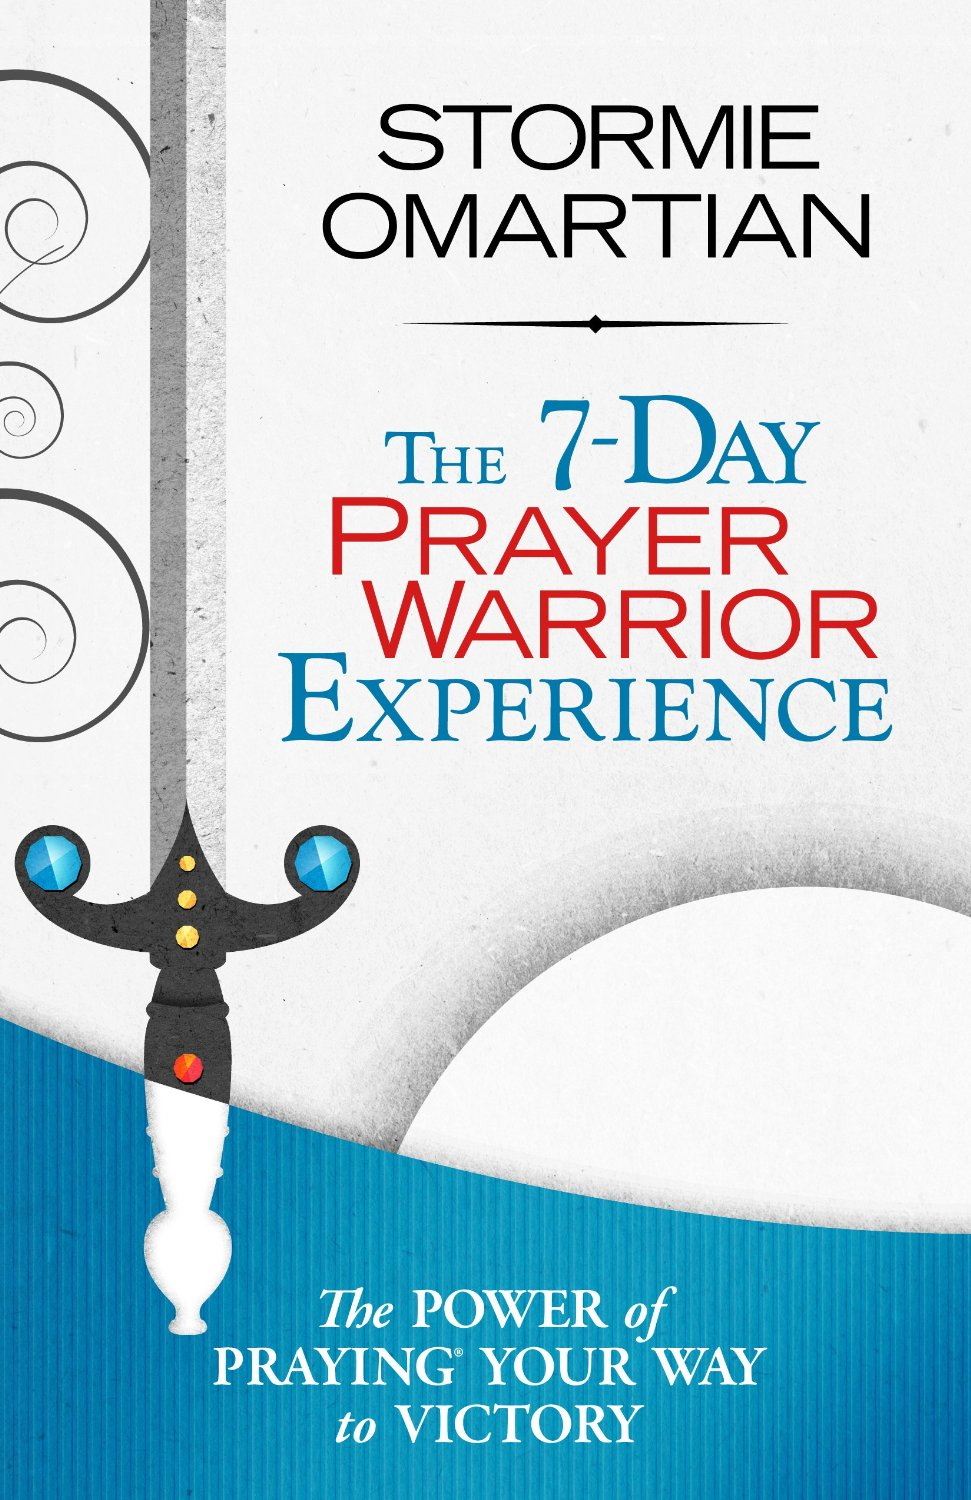 The 7-Day Prayer Warrior Experience by Stormie Omartian (Free Book)